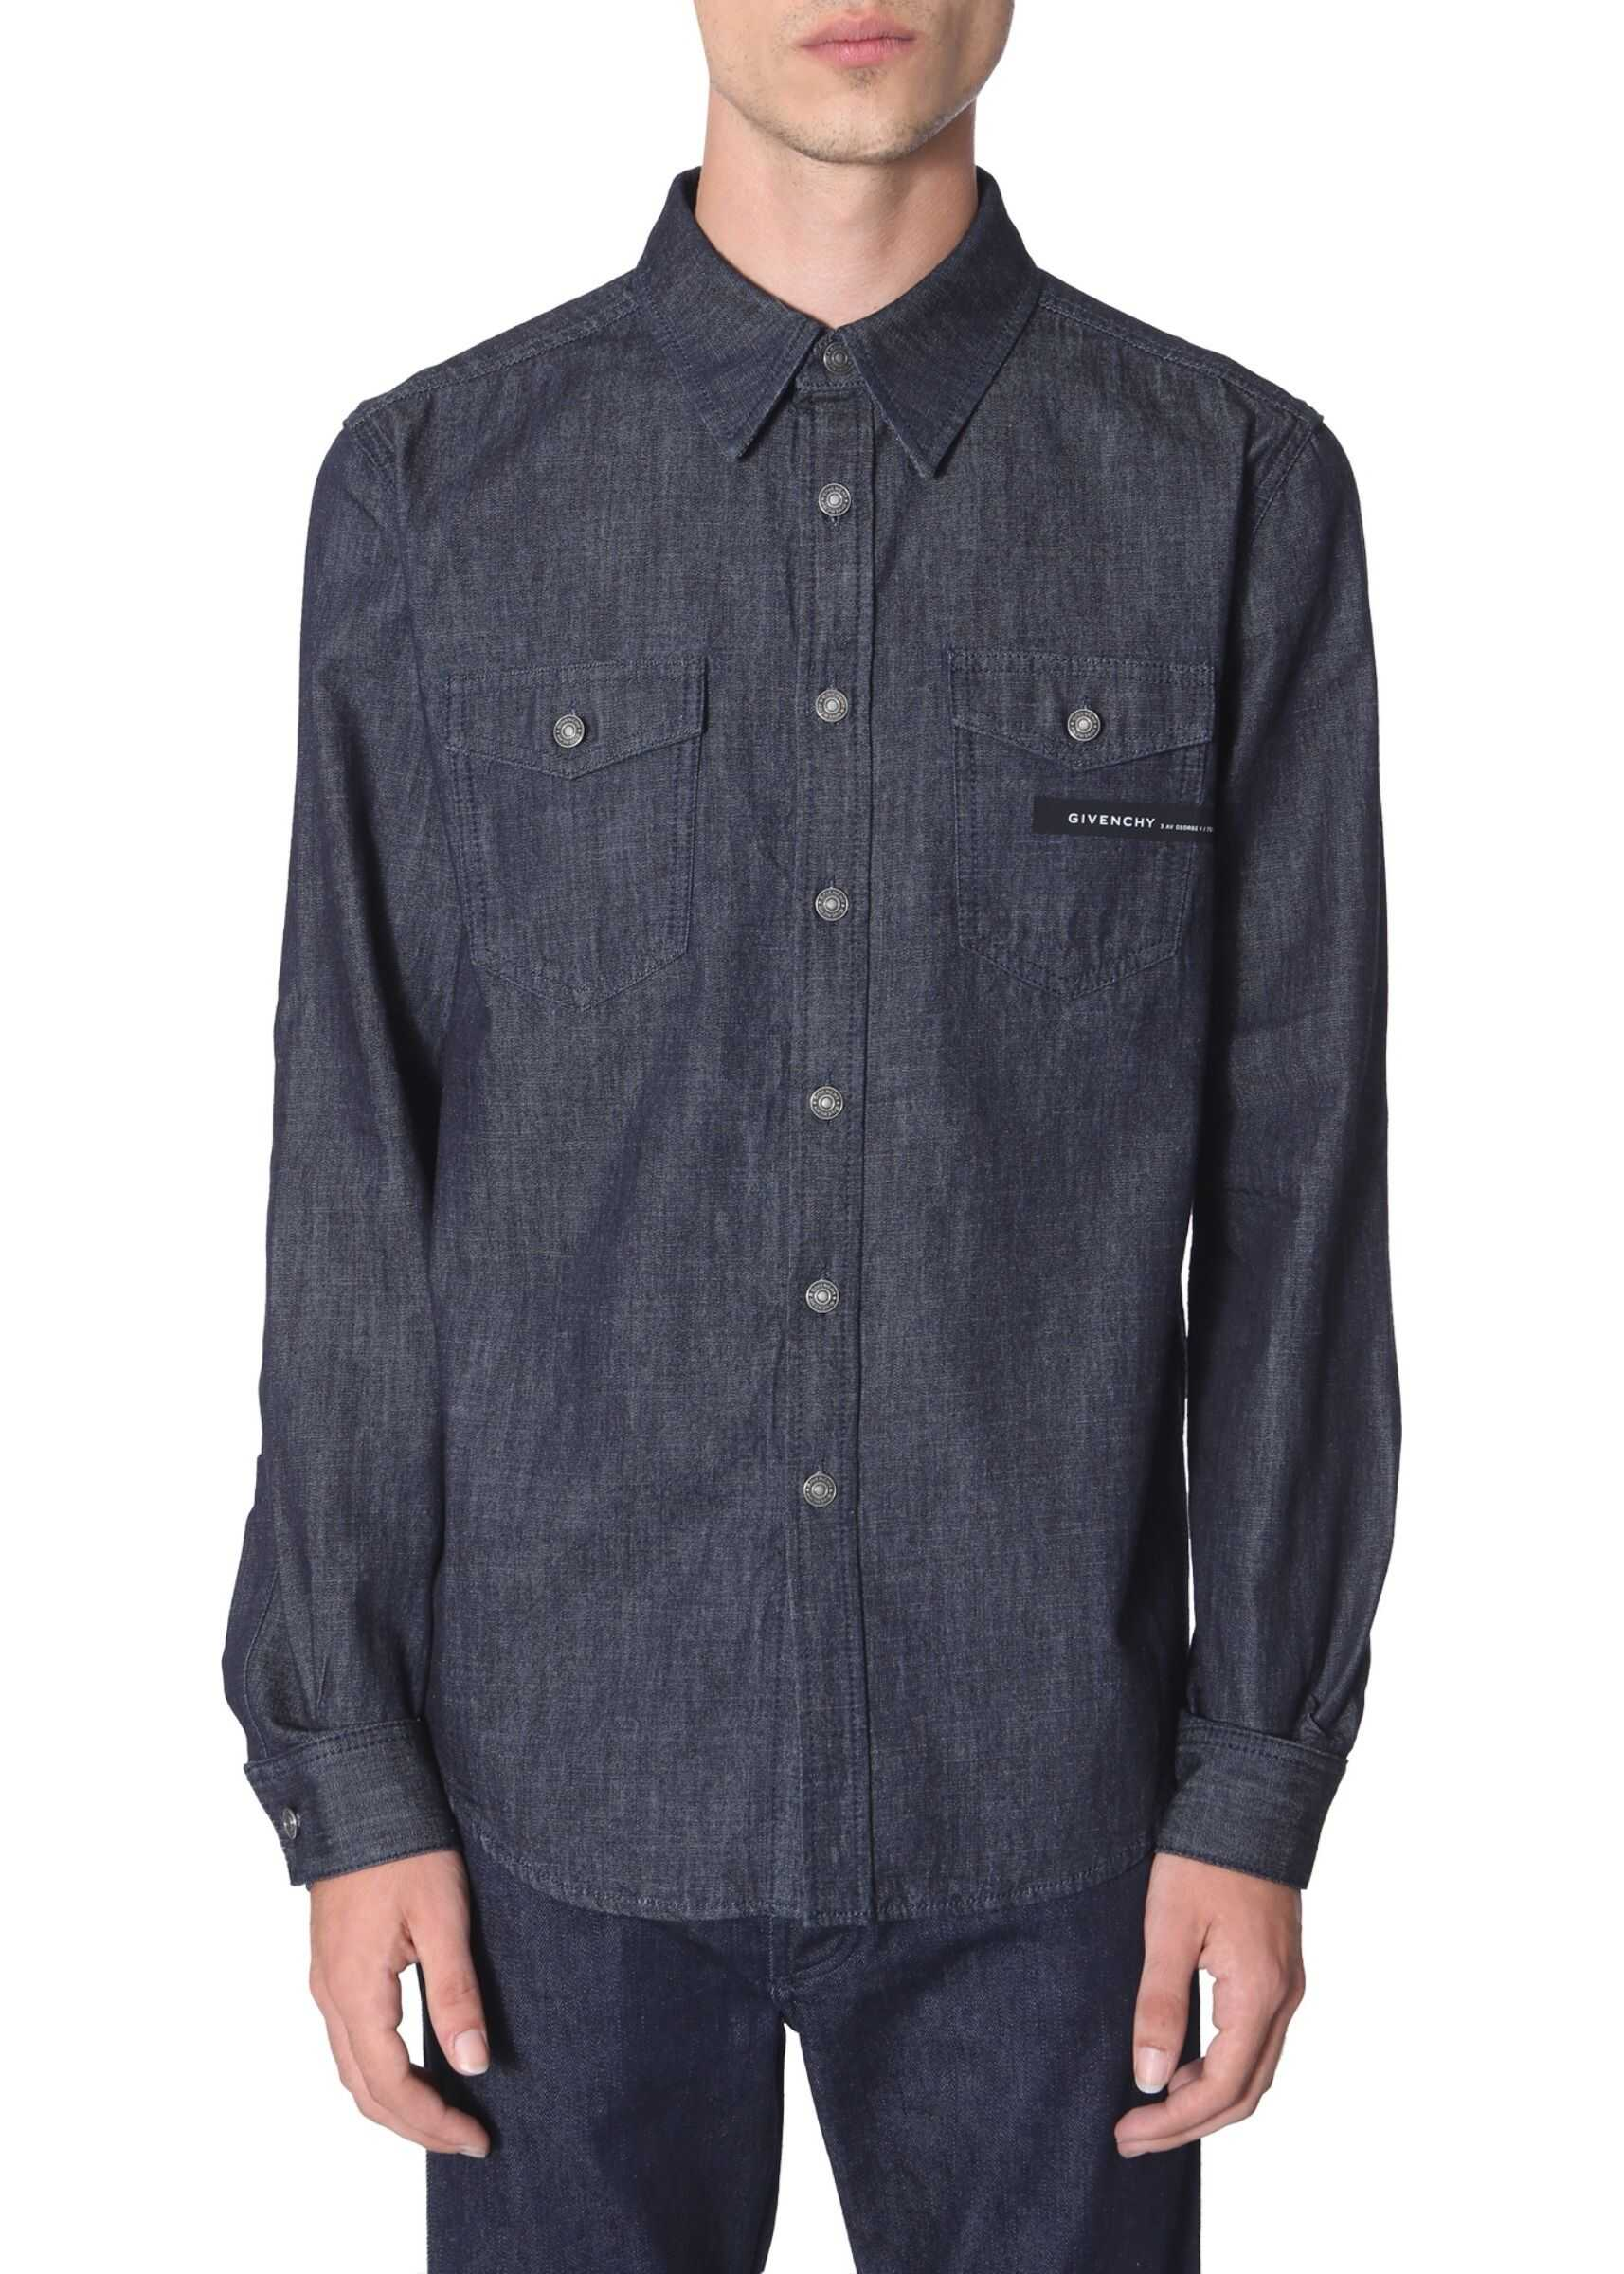 Givenchy Shirt With Logo BLUE